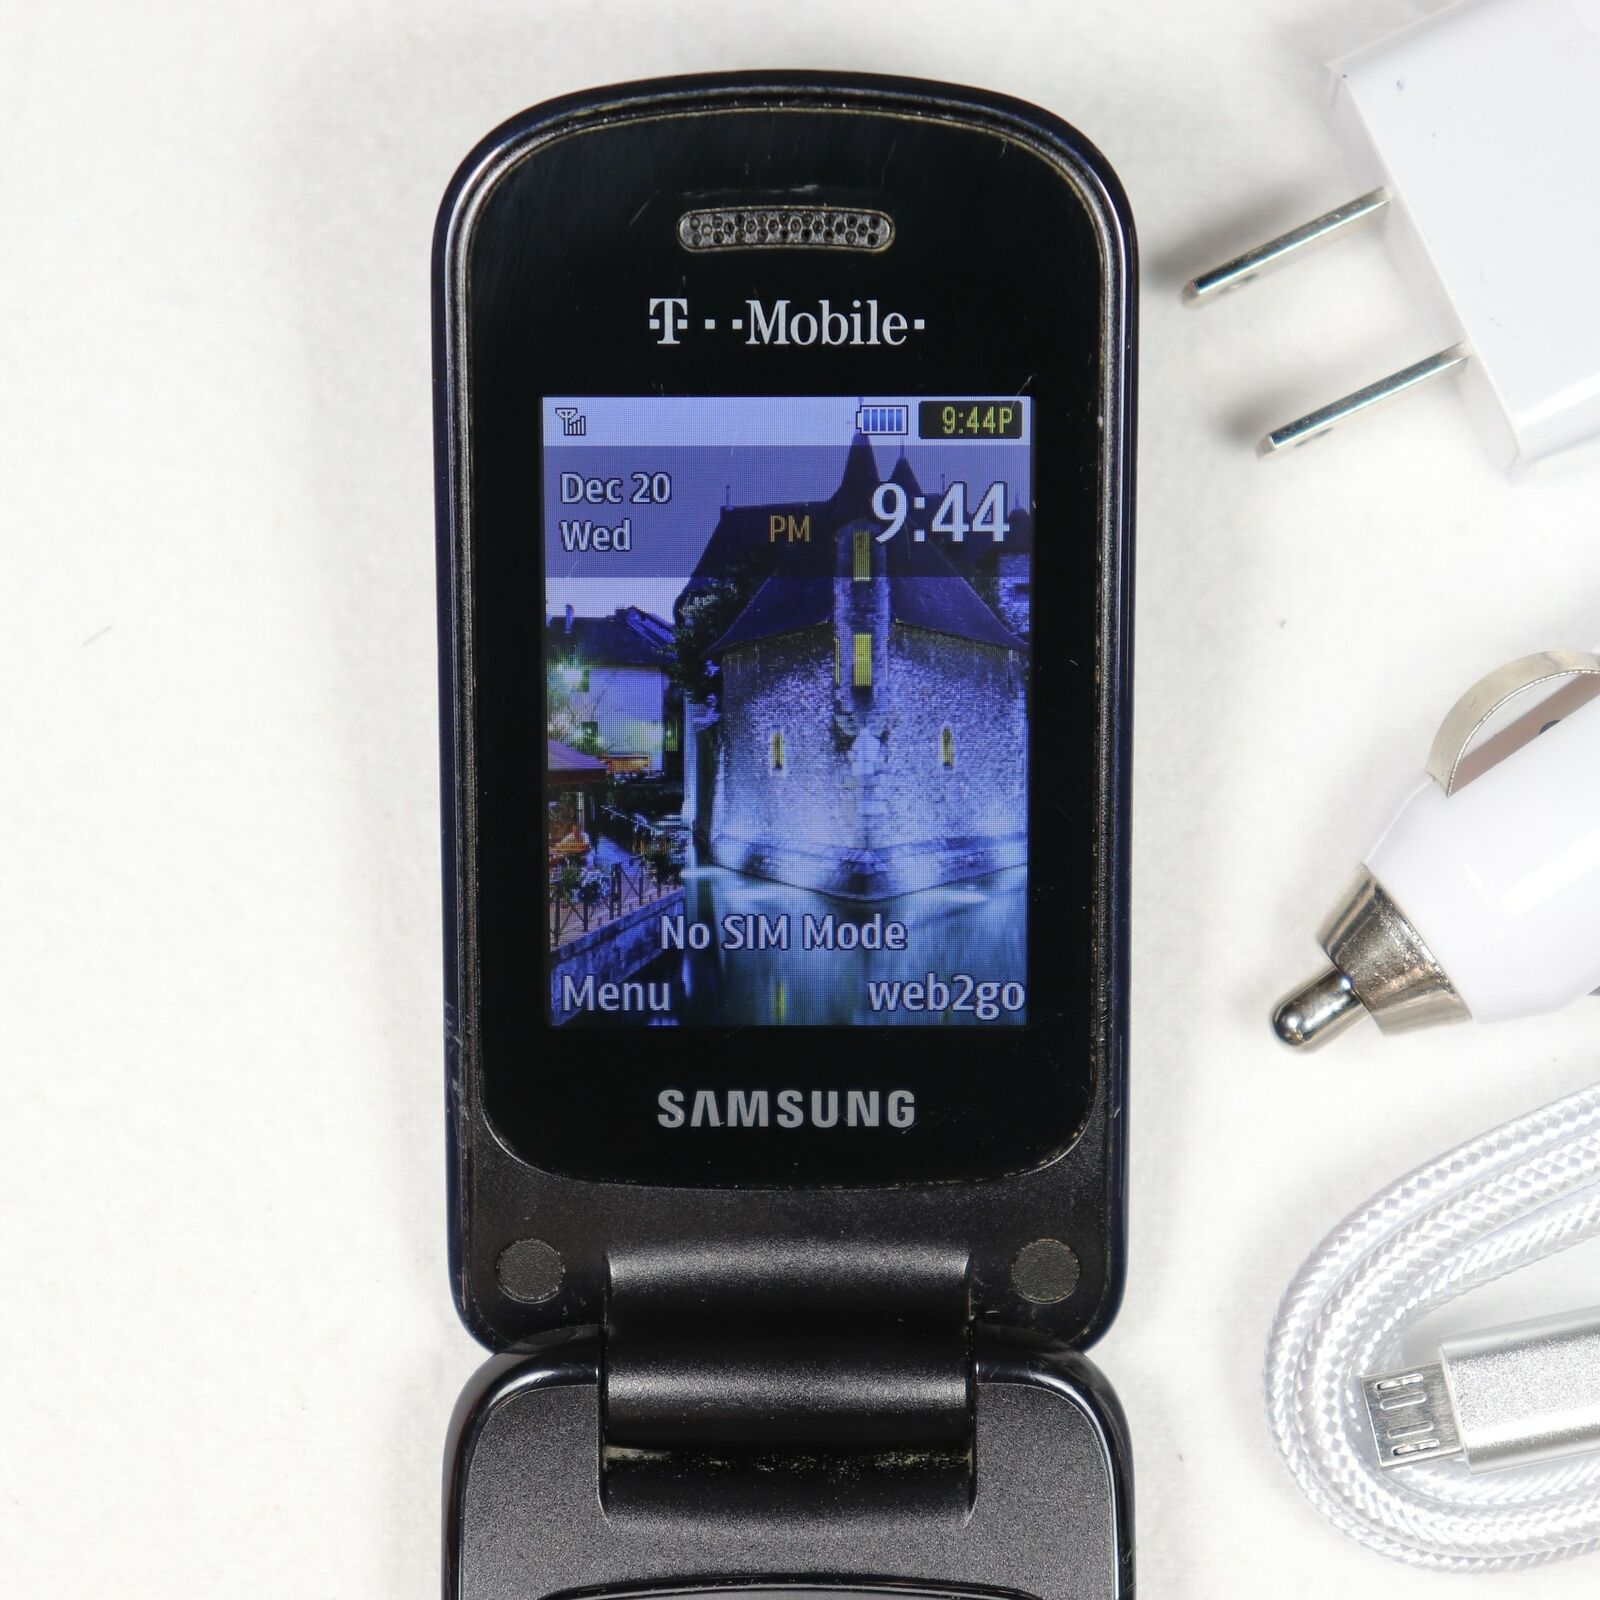 Samsung SGH-T259 (T-Mobile) Flip Phone 3G GSM - Blue - 🌟 Fast Ship 🌟 EXCELLENT